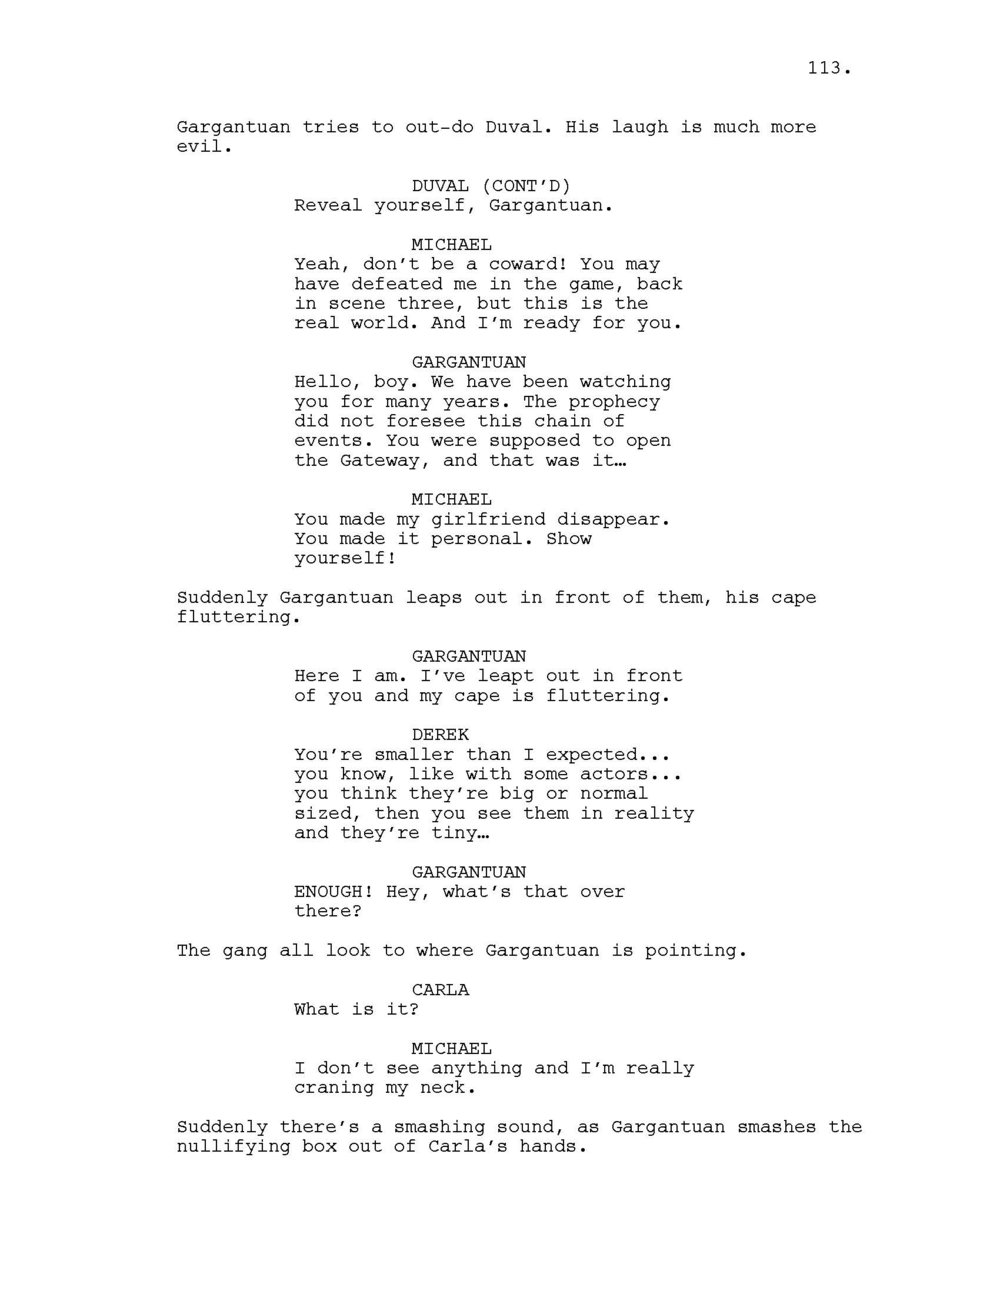 INVISIBLE WORLD SCRIPT_Page_114.jpg